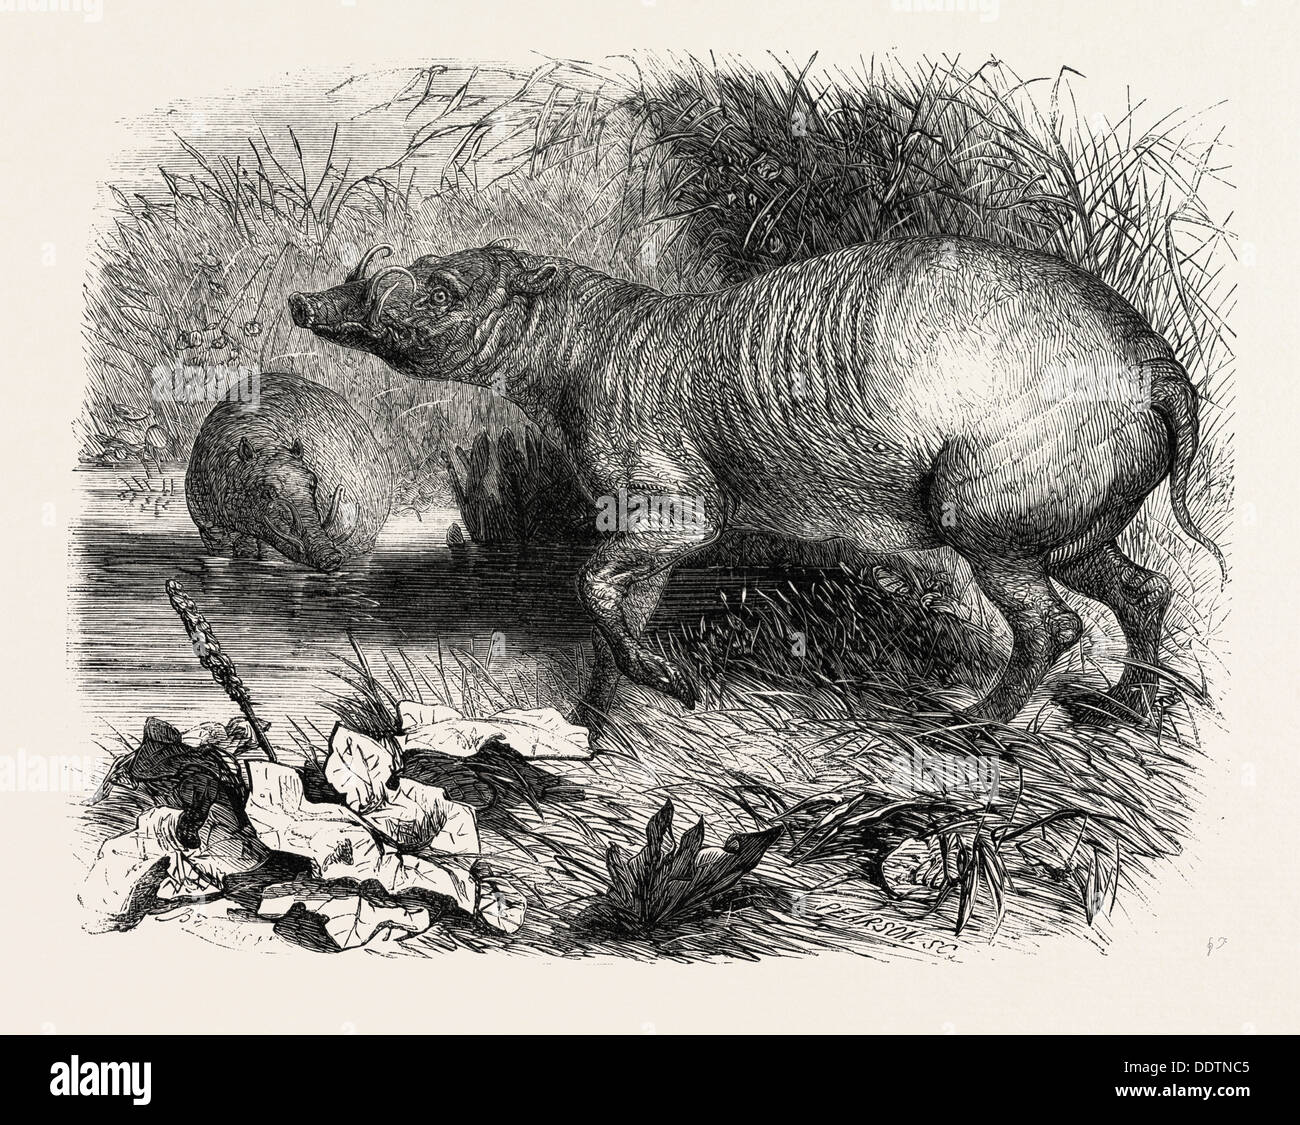 THE BABIRUSSA, RECENTLY ADDED TO THE ZOOLOGICAL SOCIETY'S GARDENS, REGENT'S PARK, LONDON, UK, 1860 engraving - Stock Image